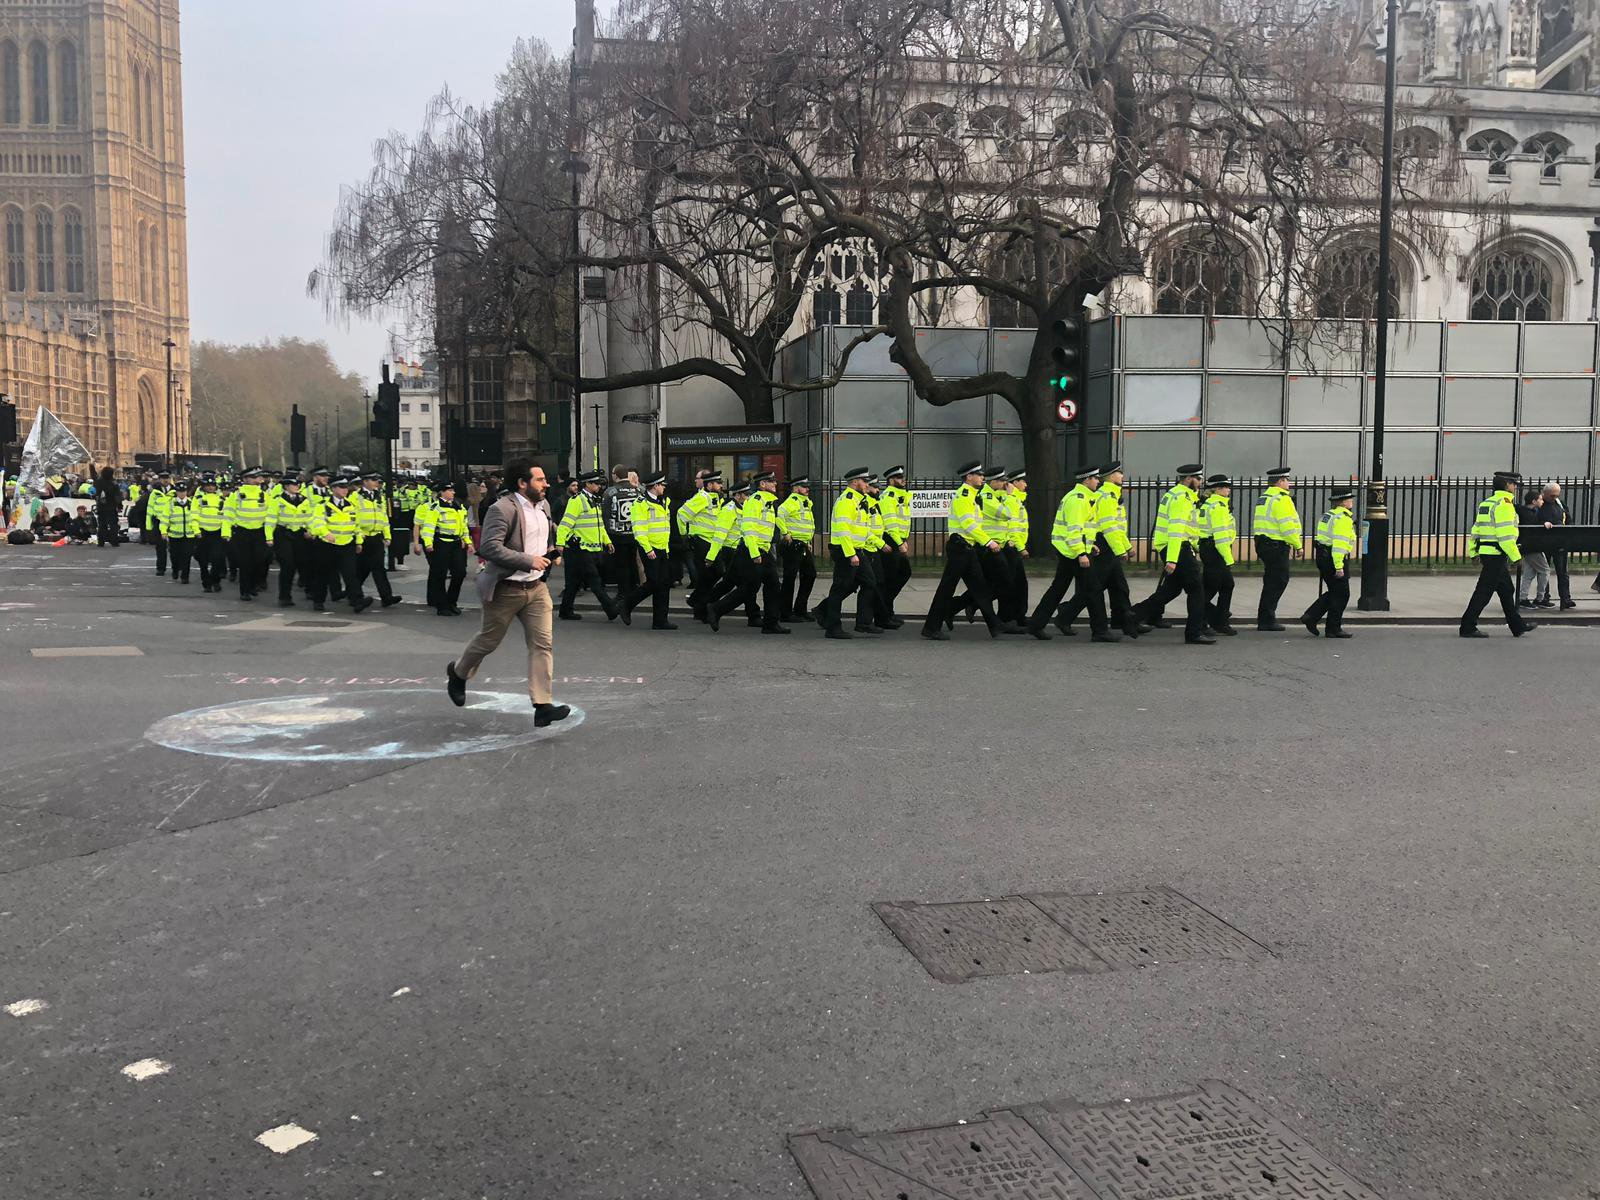 Hundreds of police storm Parliament Square to arrest climate change protesters